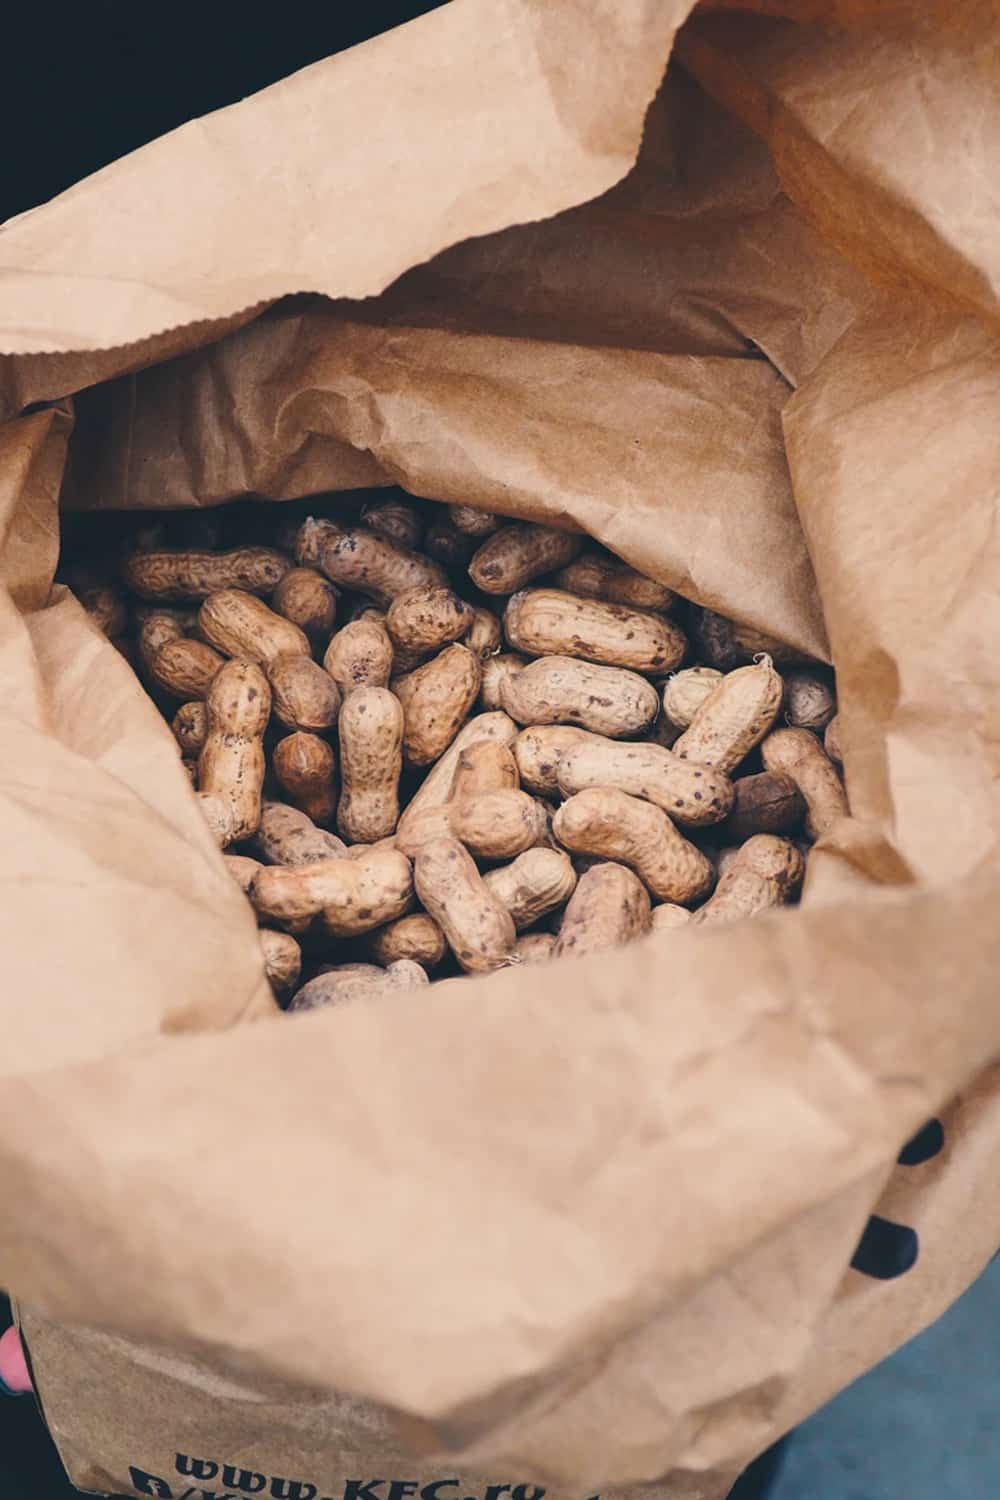 Peanuts in their shells in a large brown paper bag.